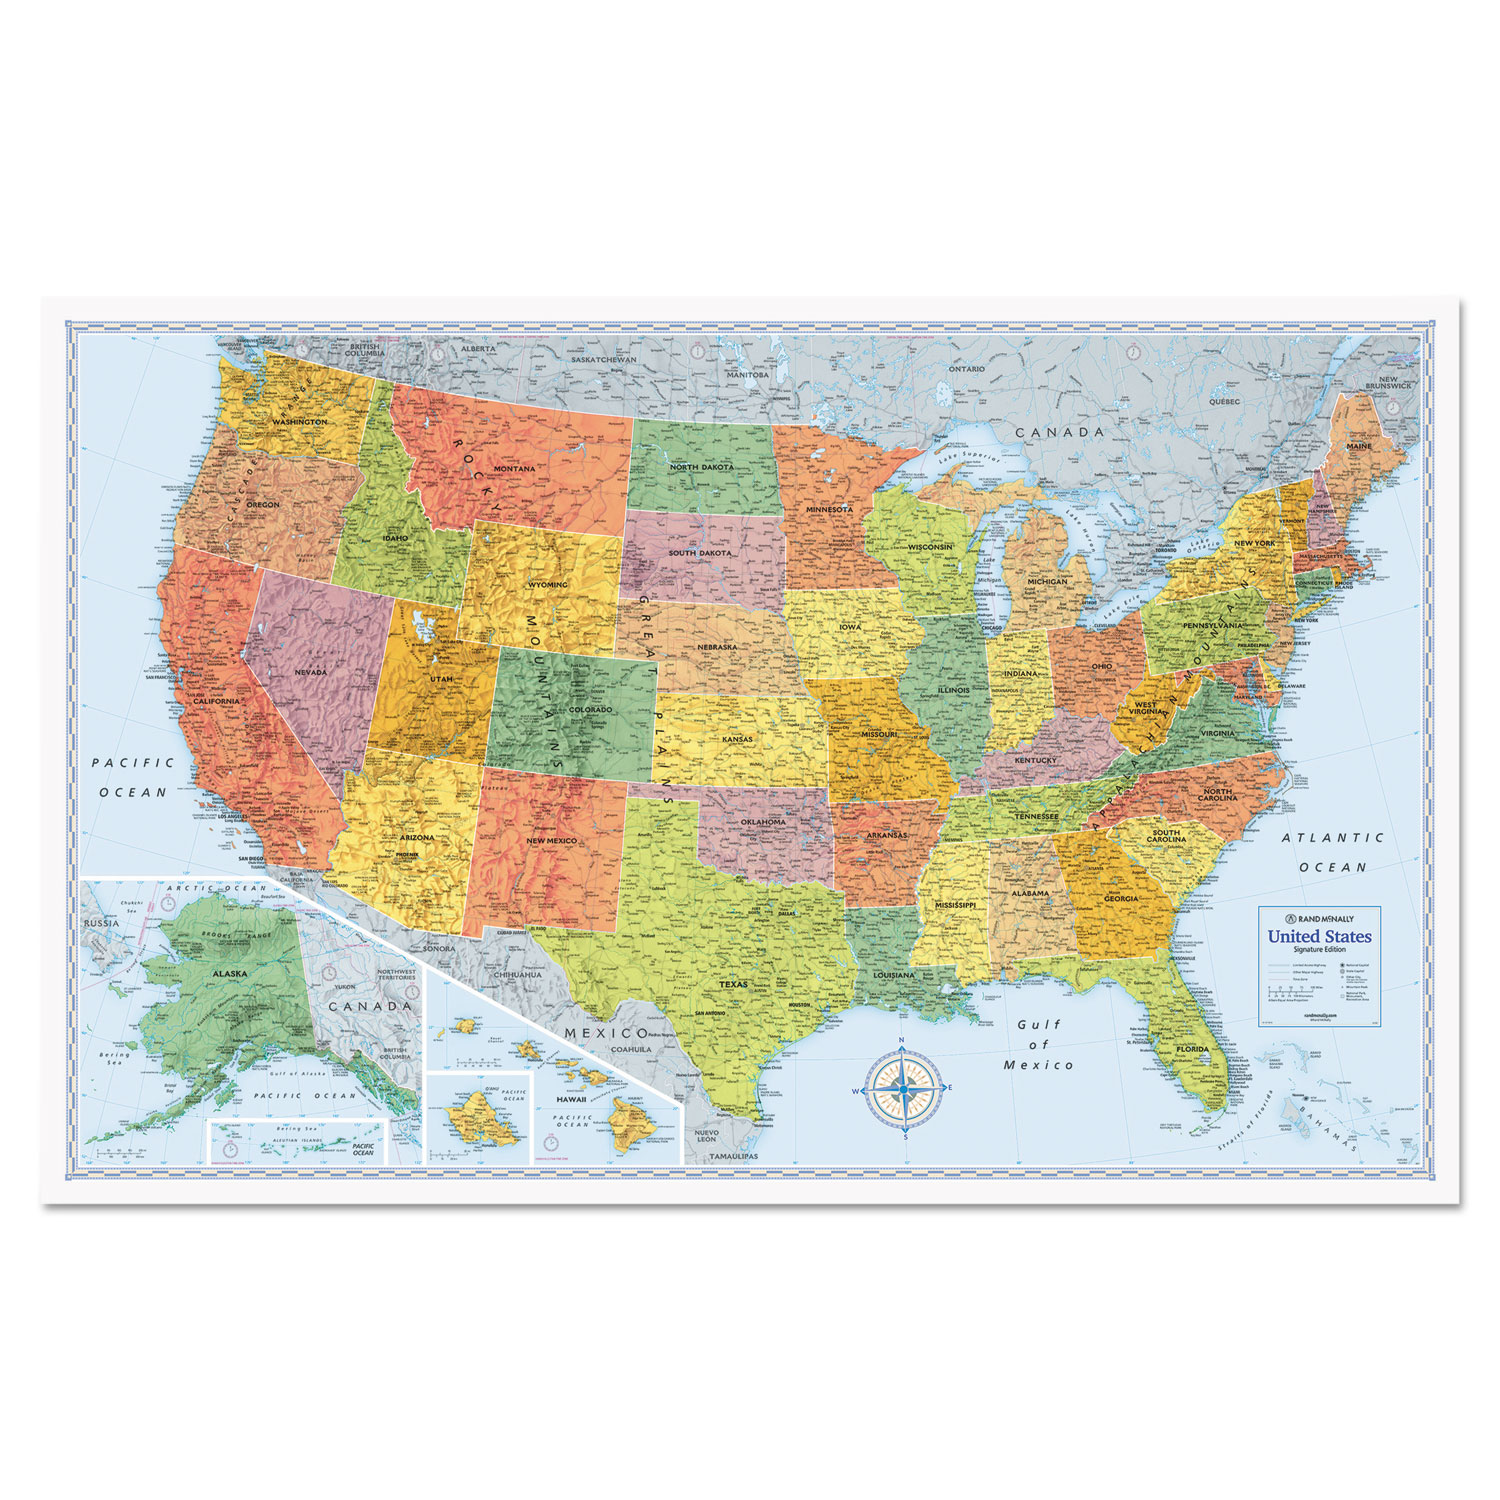 US PhysicalPolitical Map By Rand McNally AVTRM - Us map dry erase